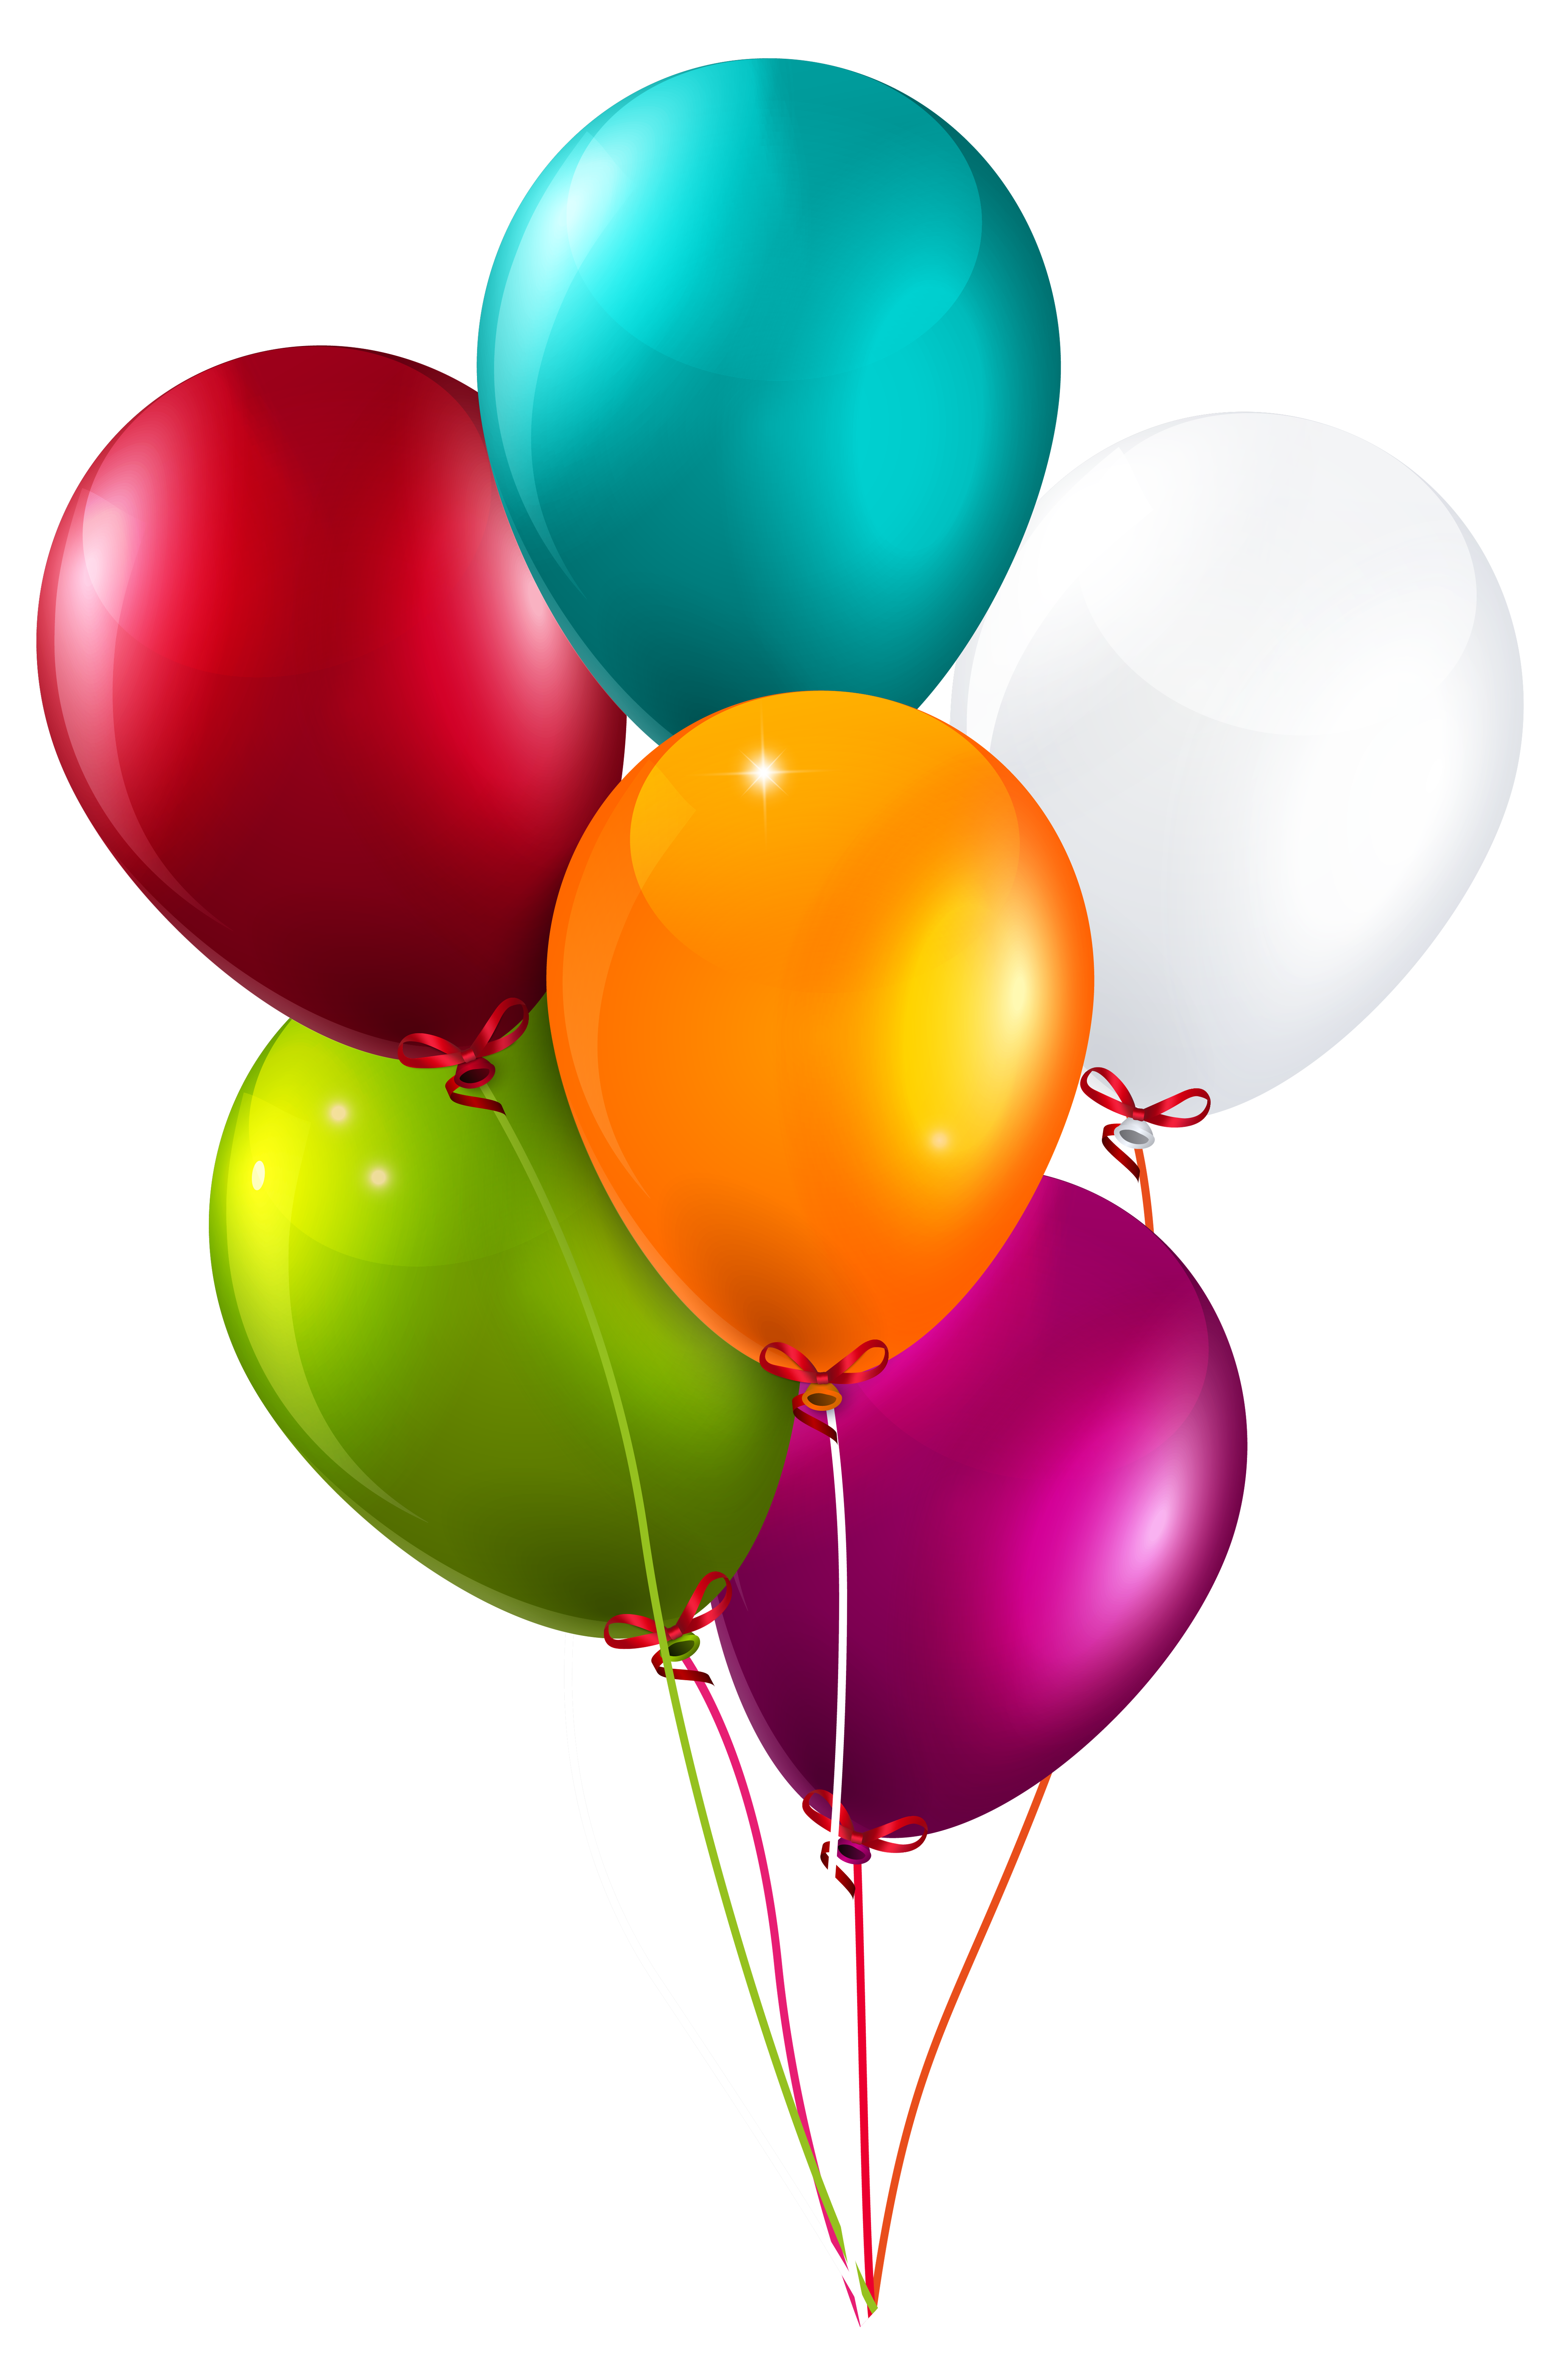 Colorful Balloons Bunch Large PNG Clipart Image.